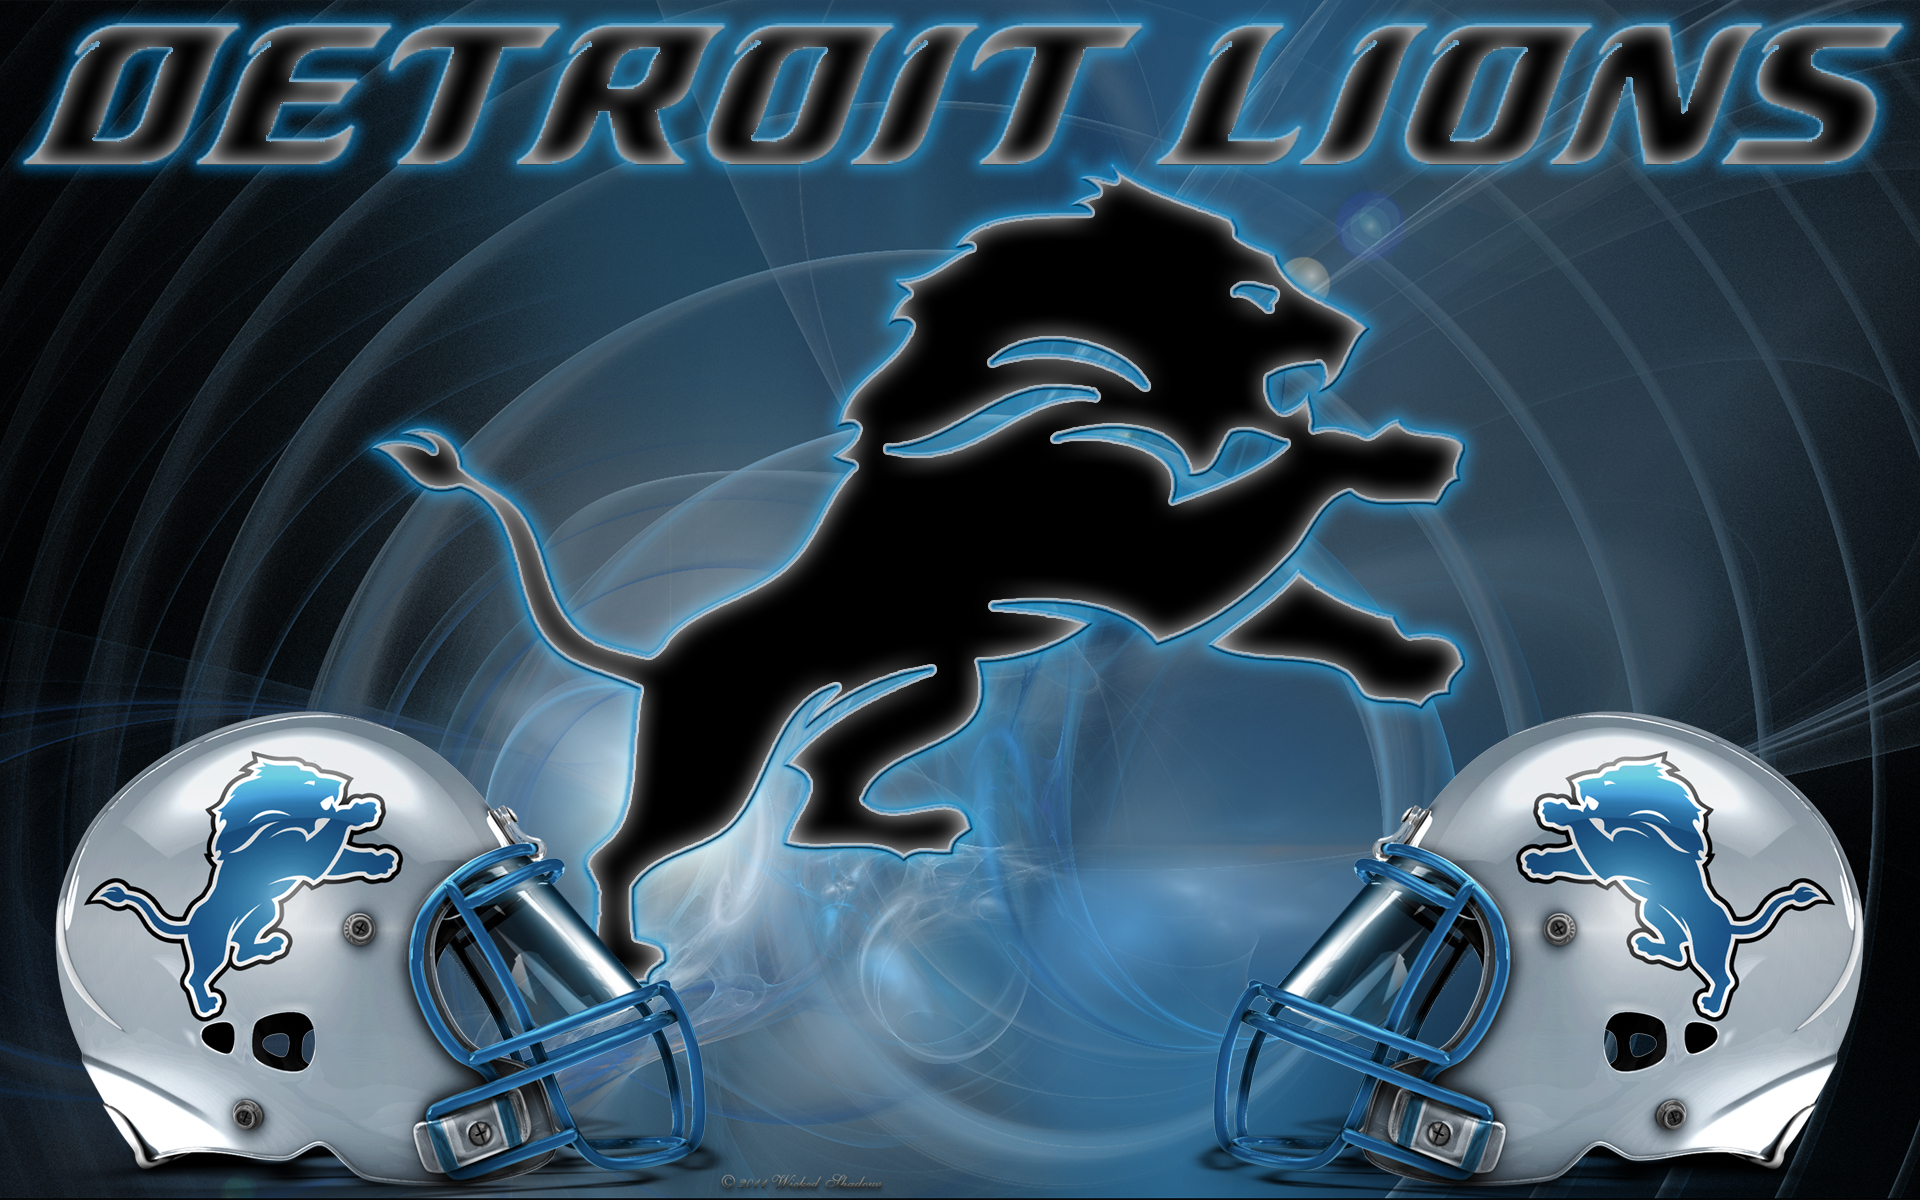 Wallpapers By Wicked Shadows Detroit Lions Wicked Wallpaper 2011 1920x1200